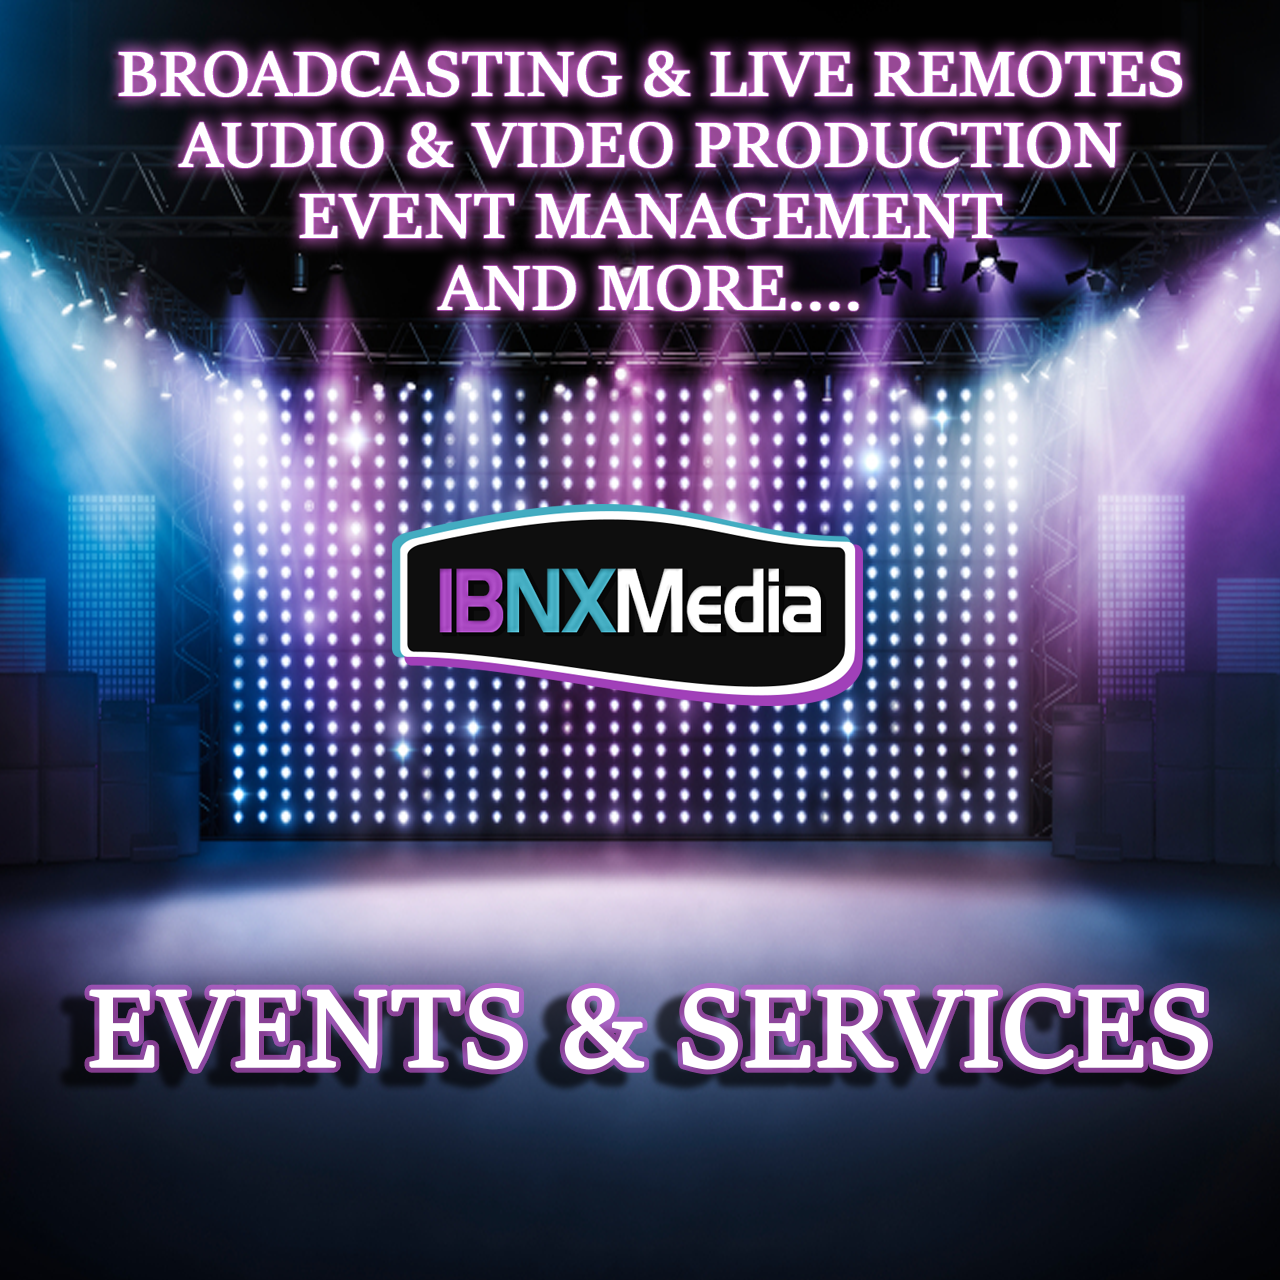 Events & Services